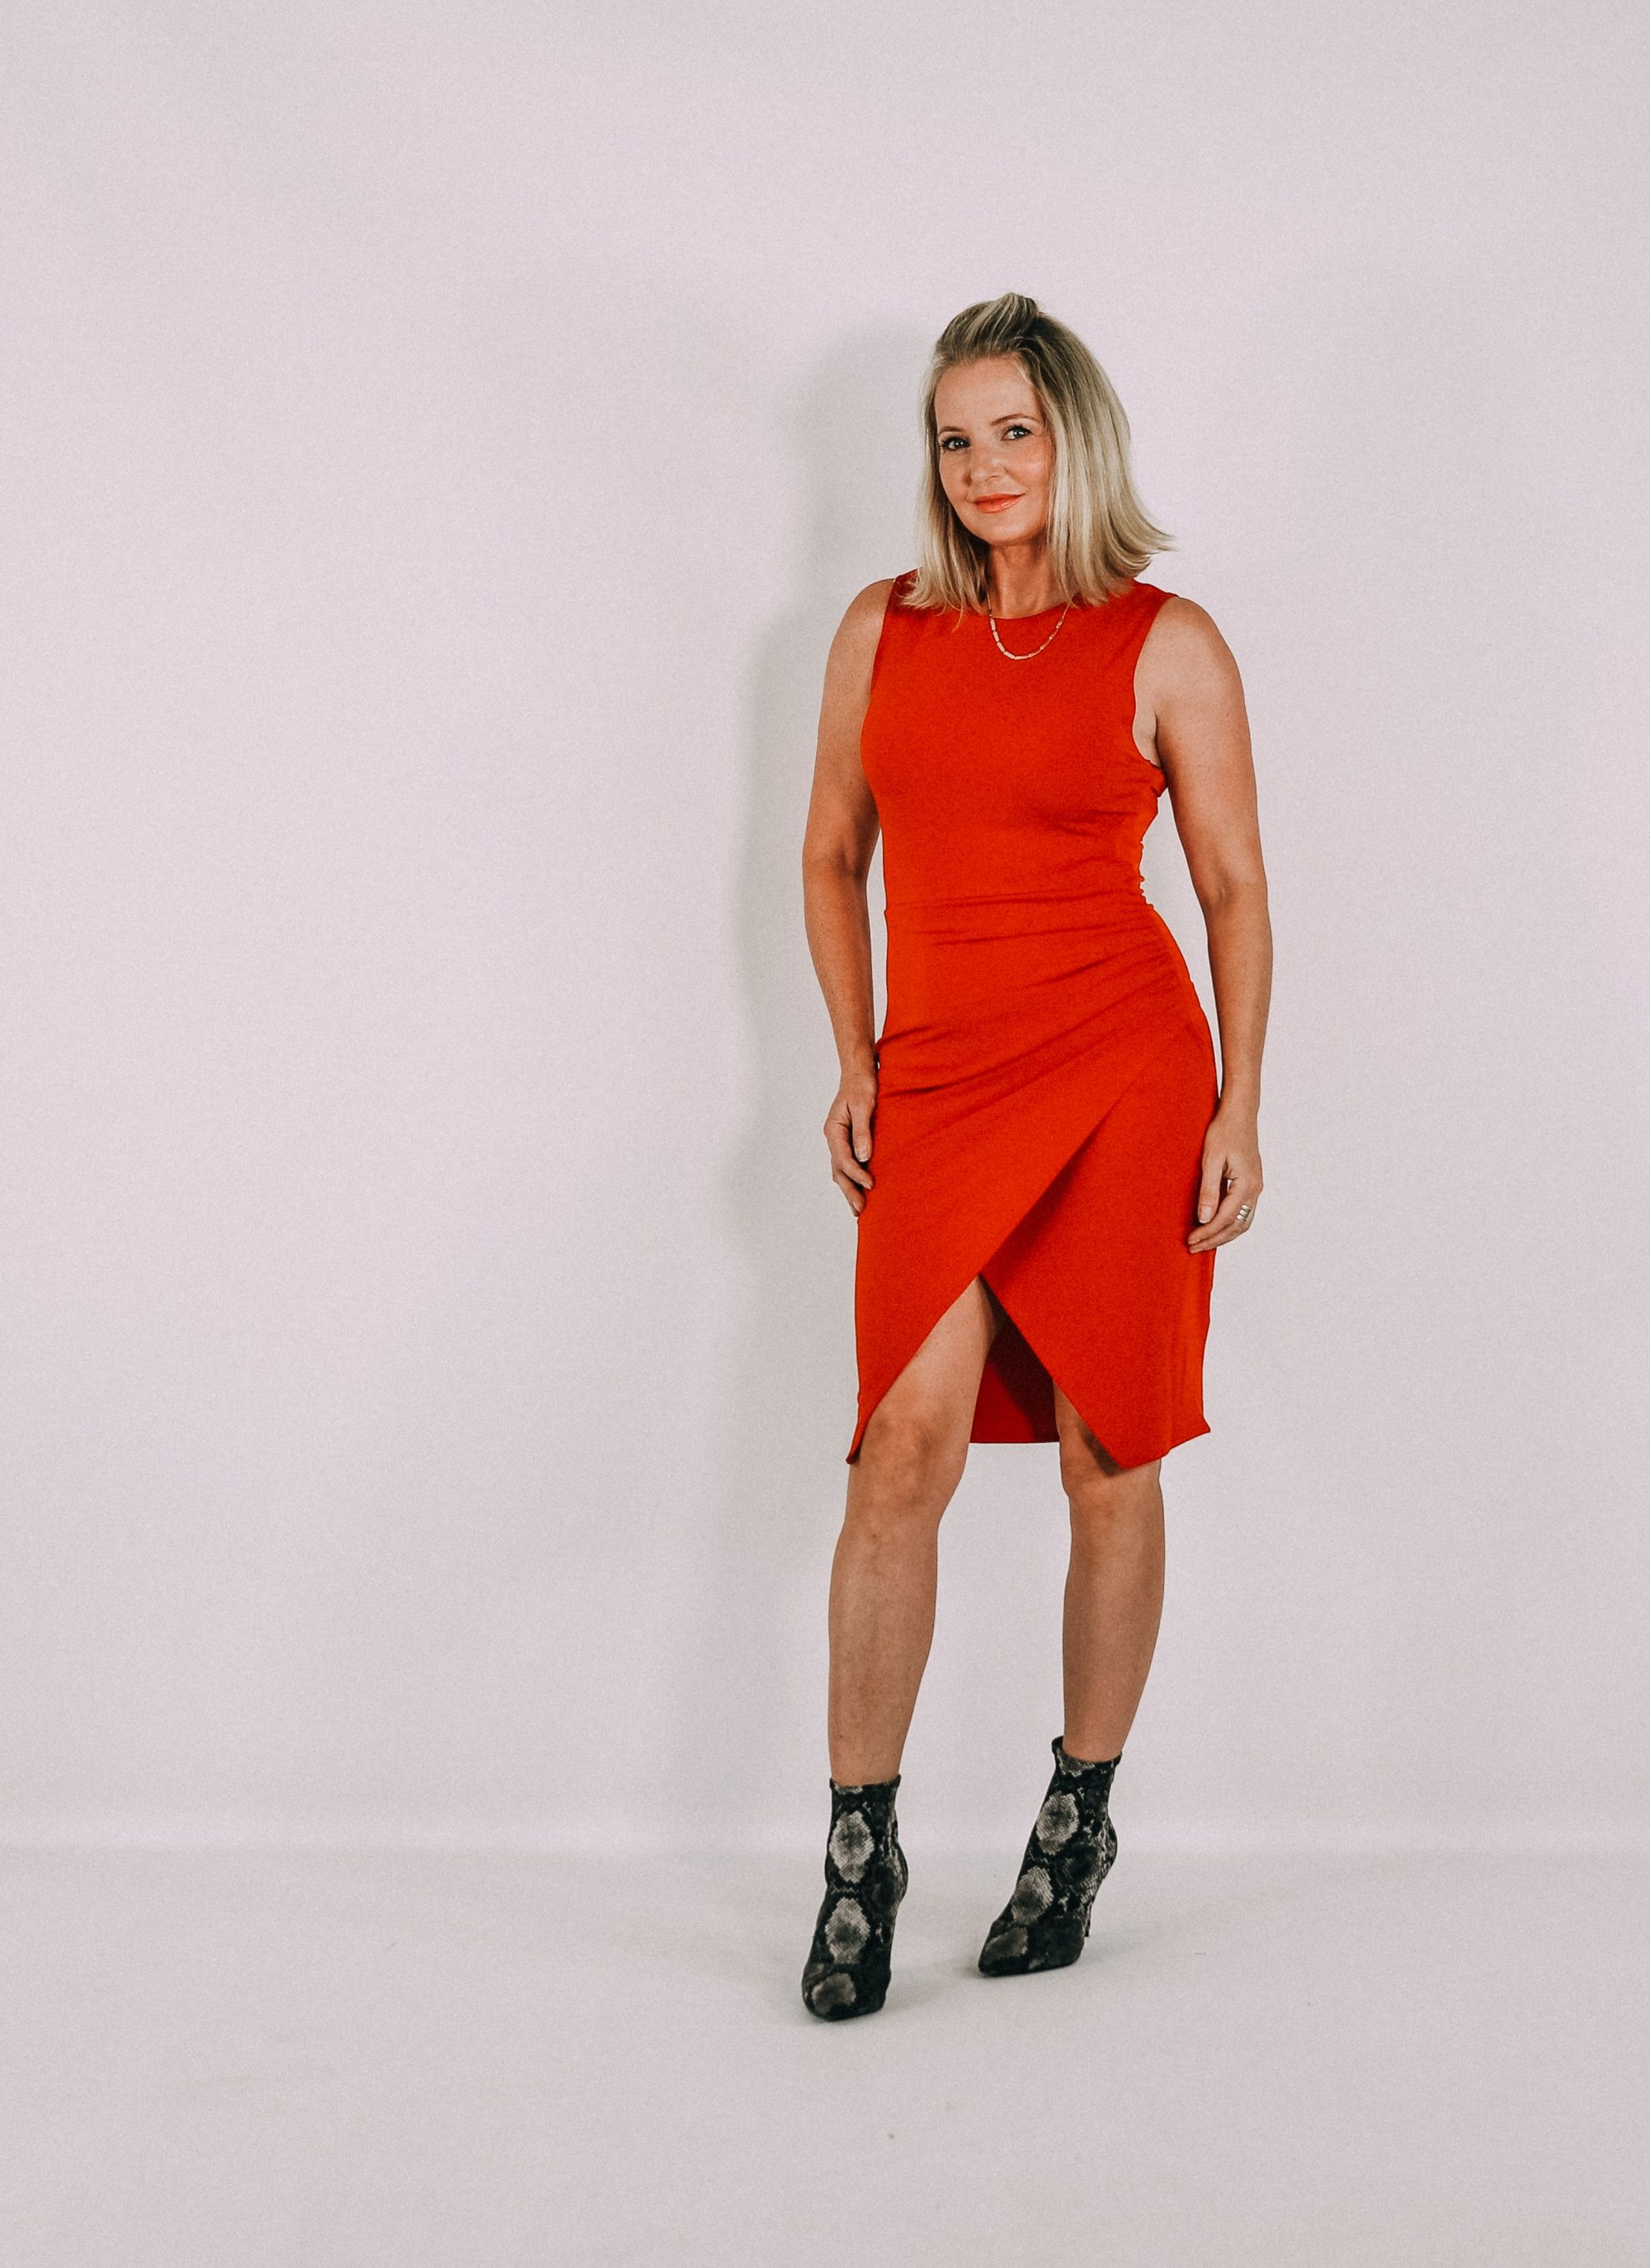 Seeing Red In A Good Way Nordstrom Anniversary Sale Busbee Style Nordstrom Anniversary Sale Busbee Style Red Dress [ 2749 x 2000 Pixel ]